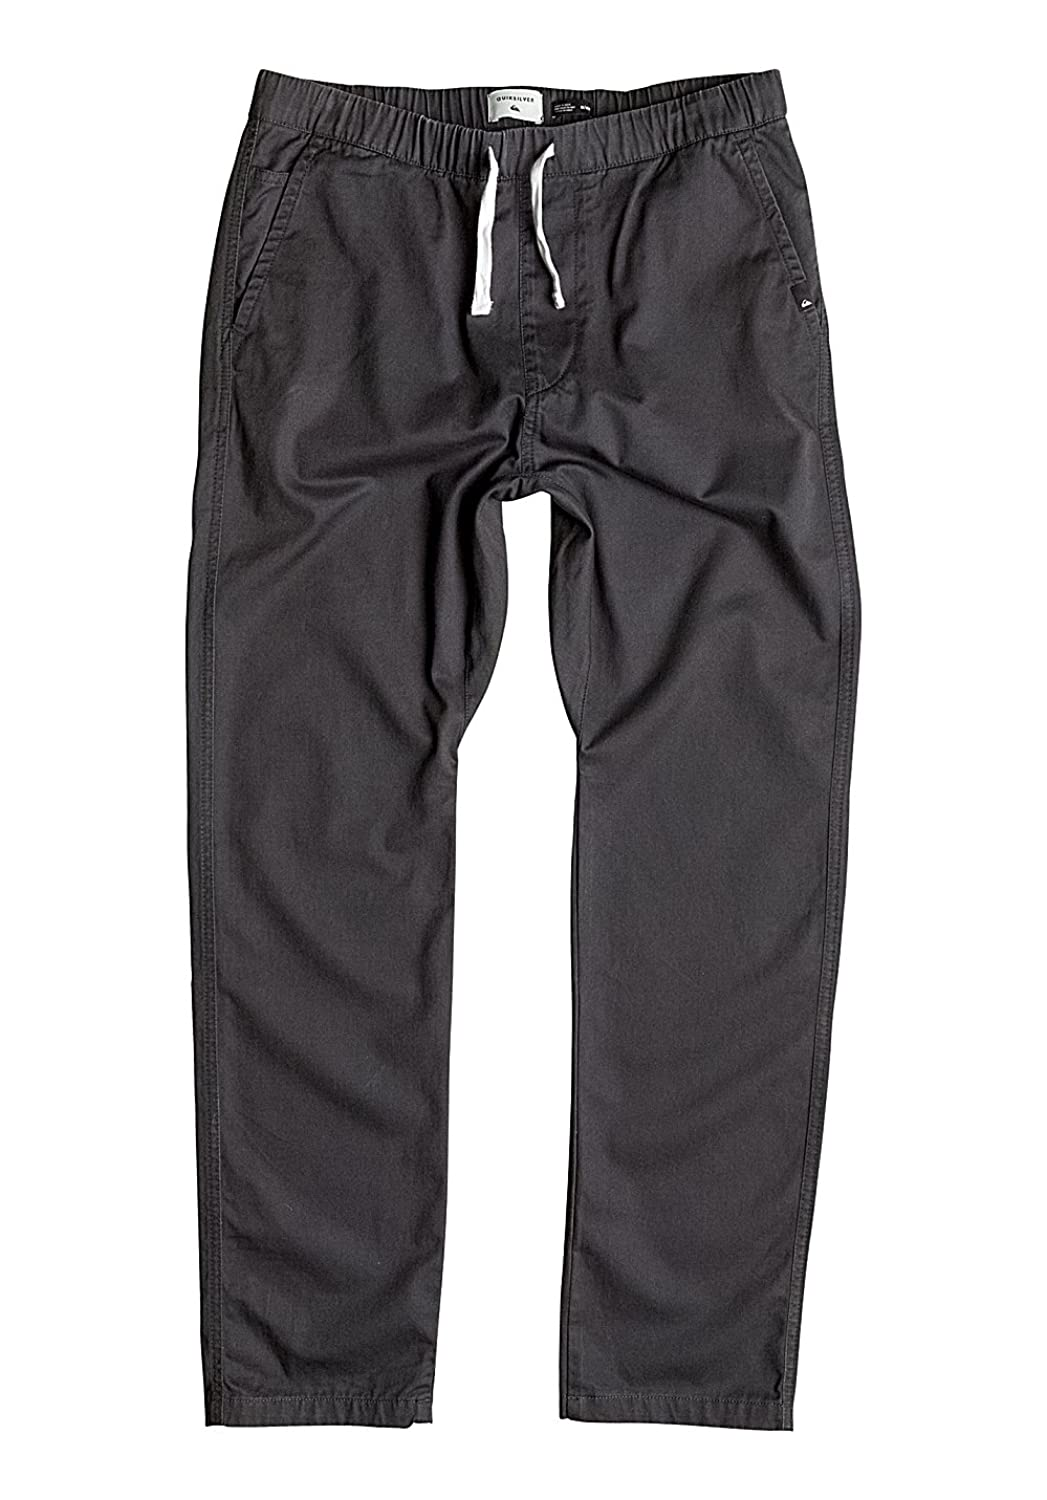 Herren Hose Quiksilver Fun Days Pants